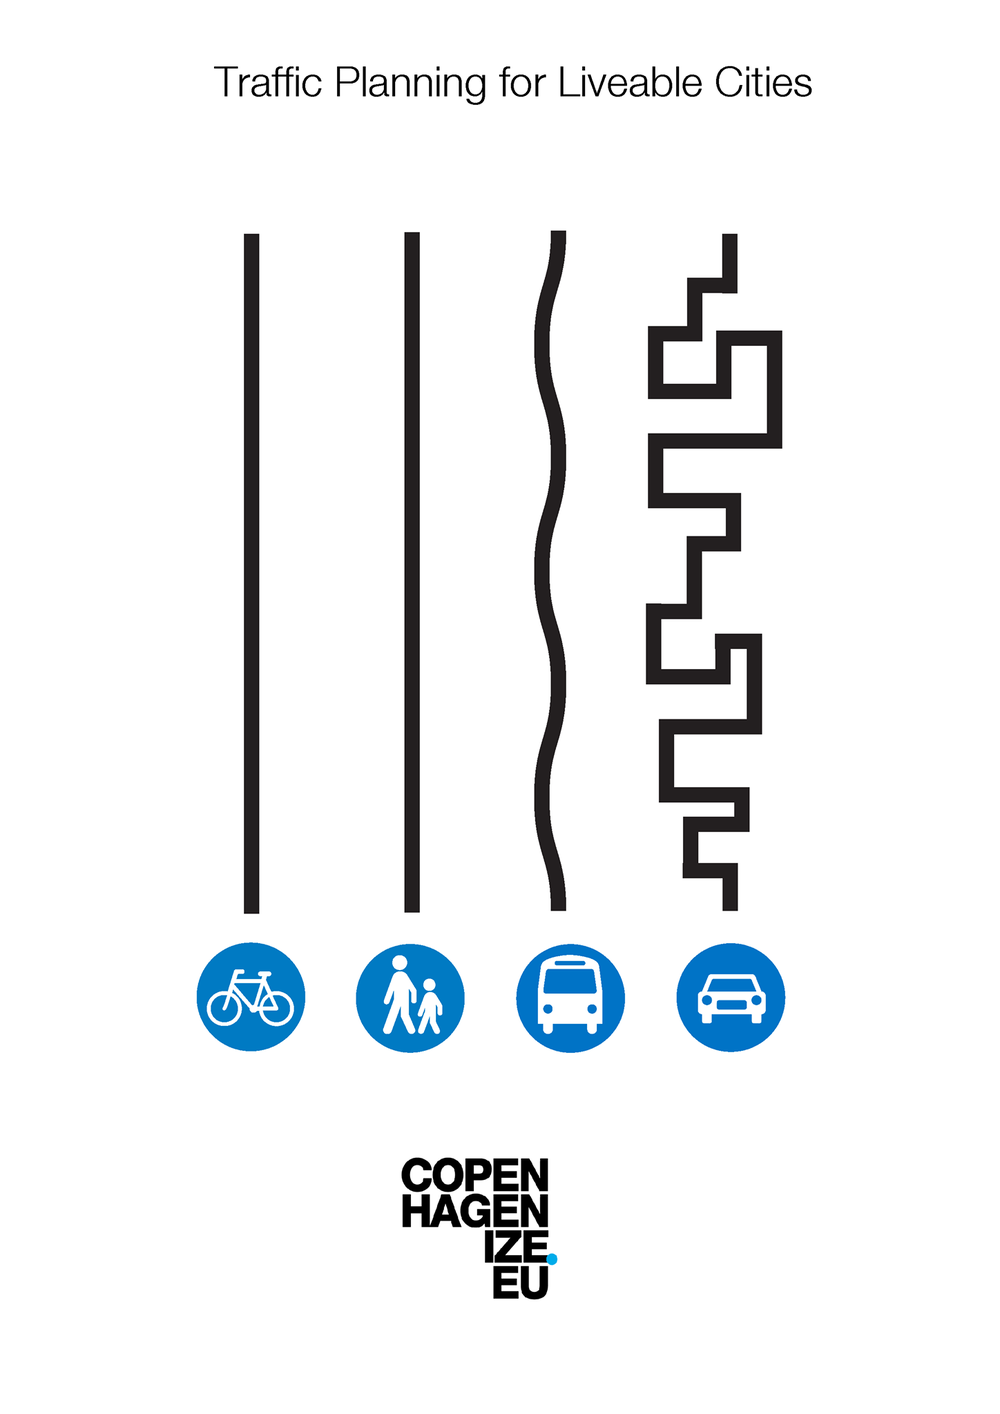 Image via the Copenhagenize Facebook page.  Best bicycle planning organization on the planet.